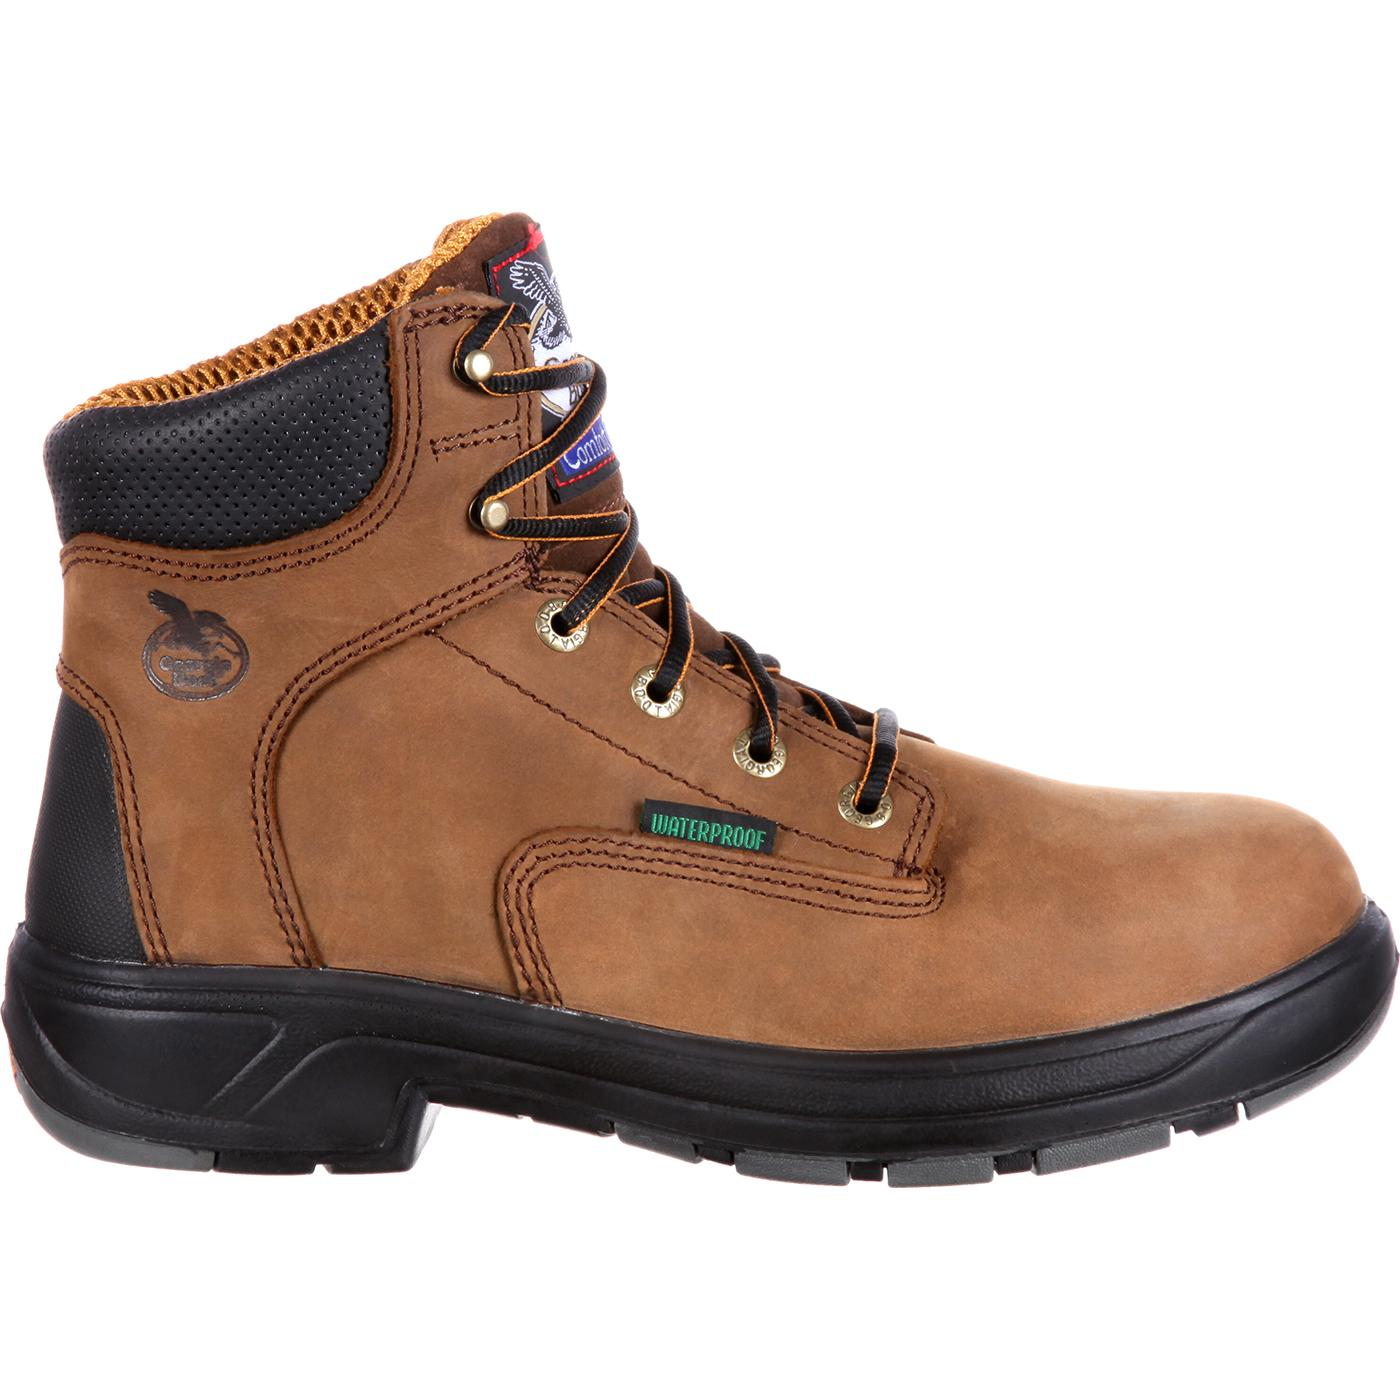 5062cad664c Georgia Boot FLXpoint Composite Toe Waterproof Work Boot